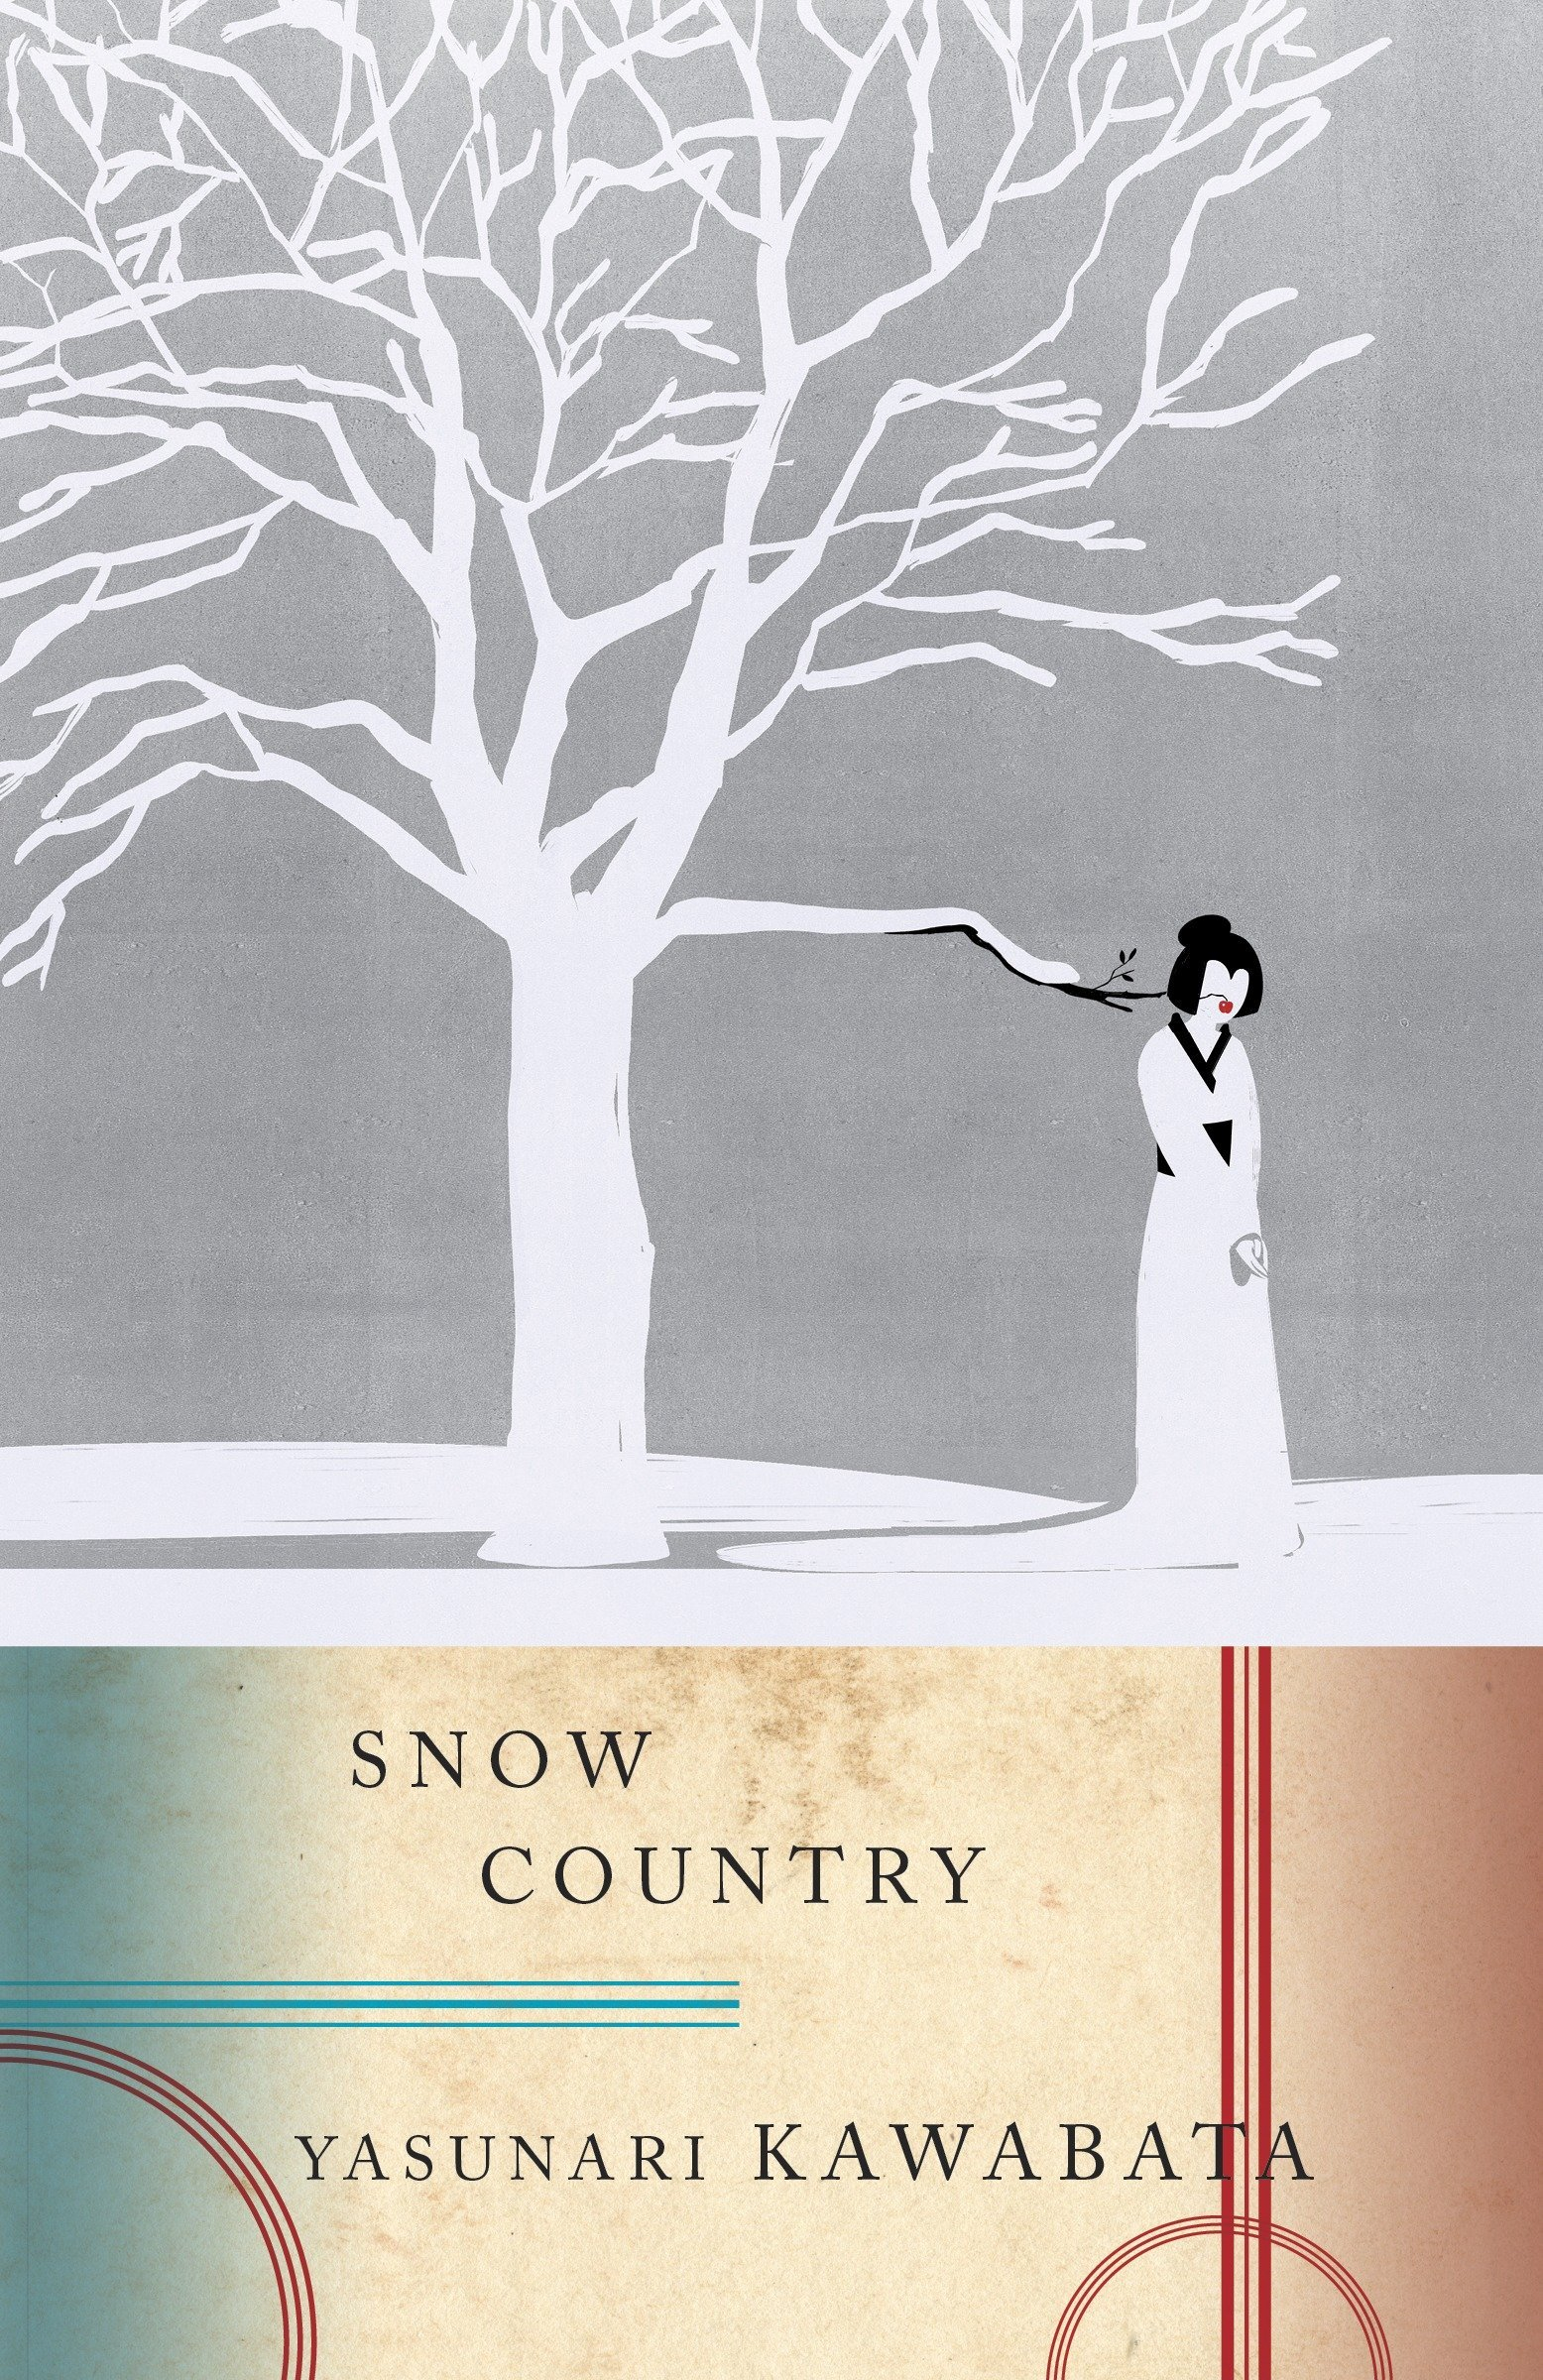 Amazon.com: Snow Country (9780679761044): Kawabata, Yasunari, Seidensticker, Edward G.: Books